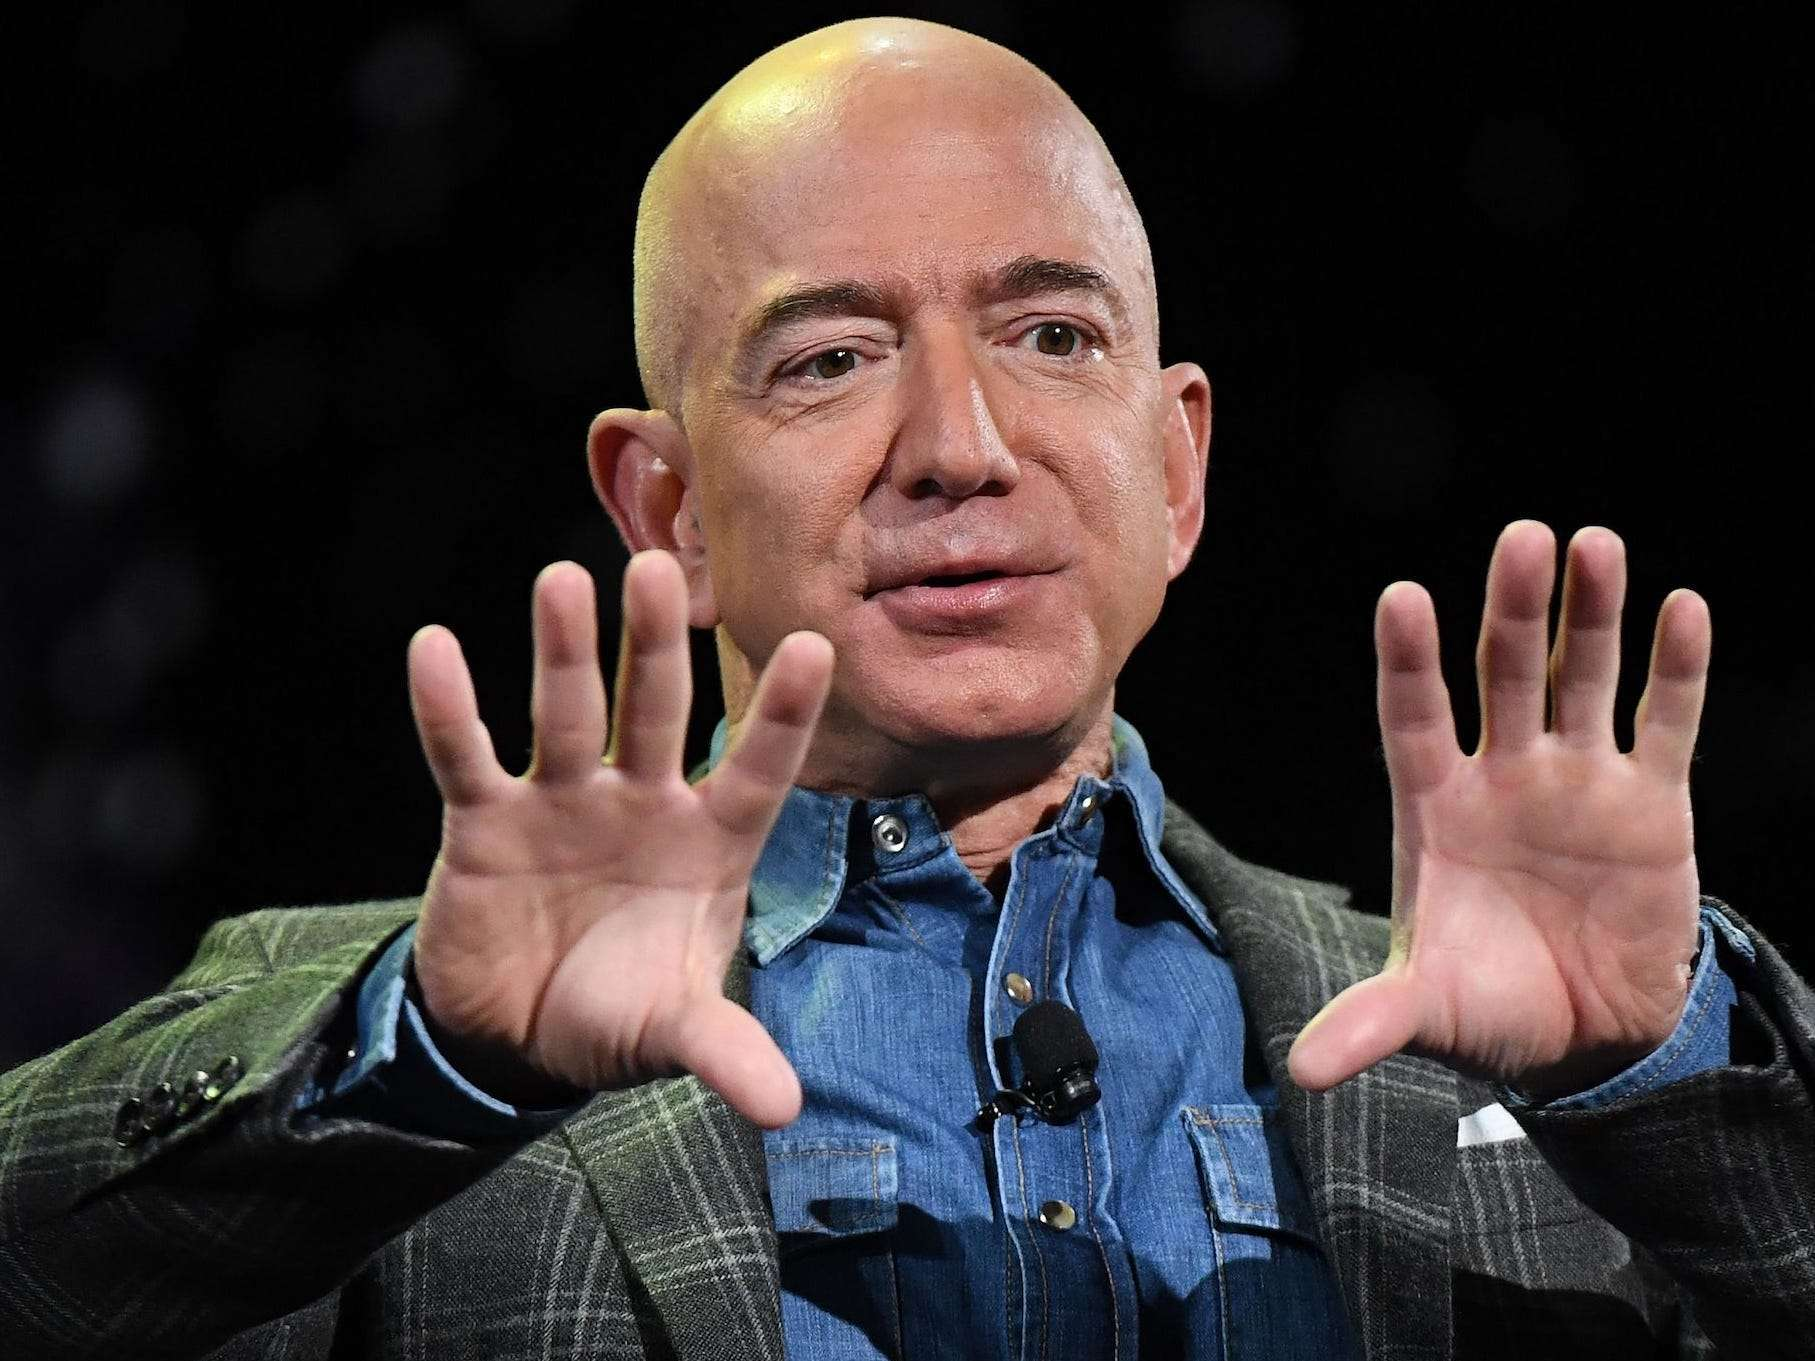 Amazon has lobbied against new laws that would force it to investigate third-party sellers' identities more thoroughly, and share contact details for